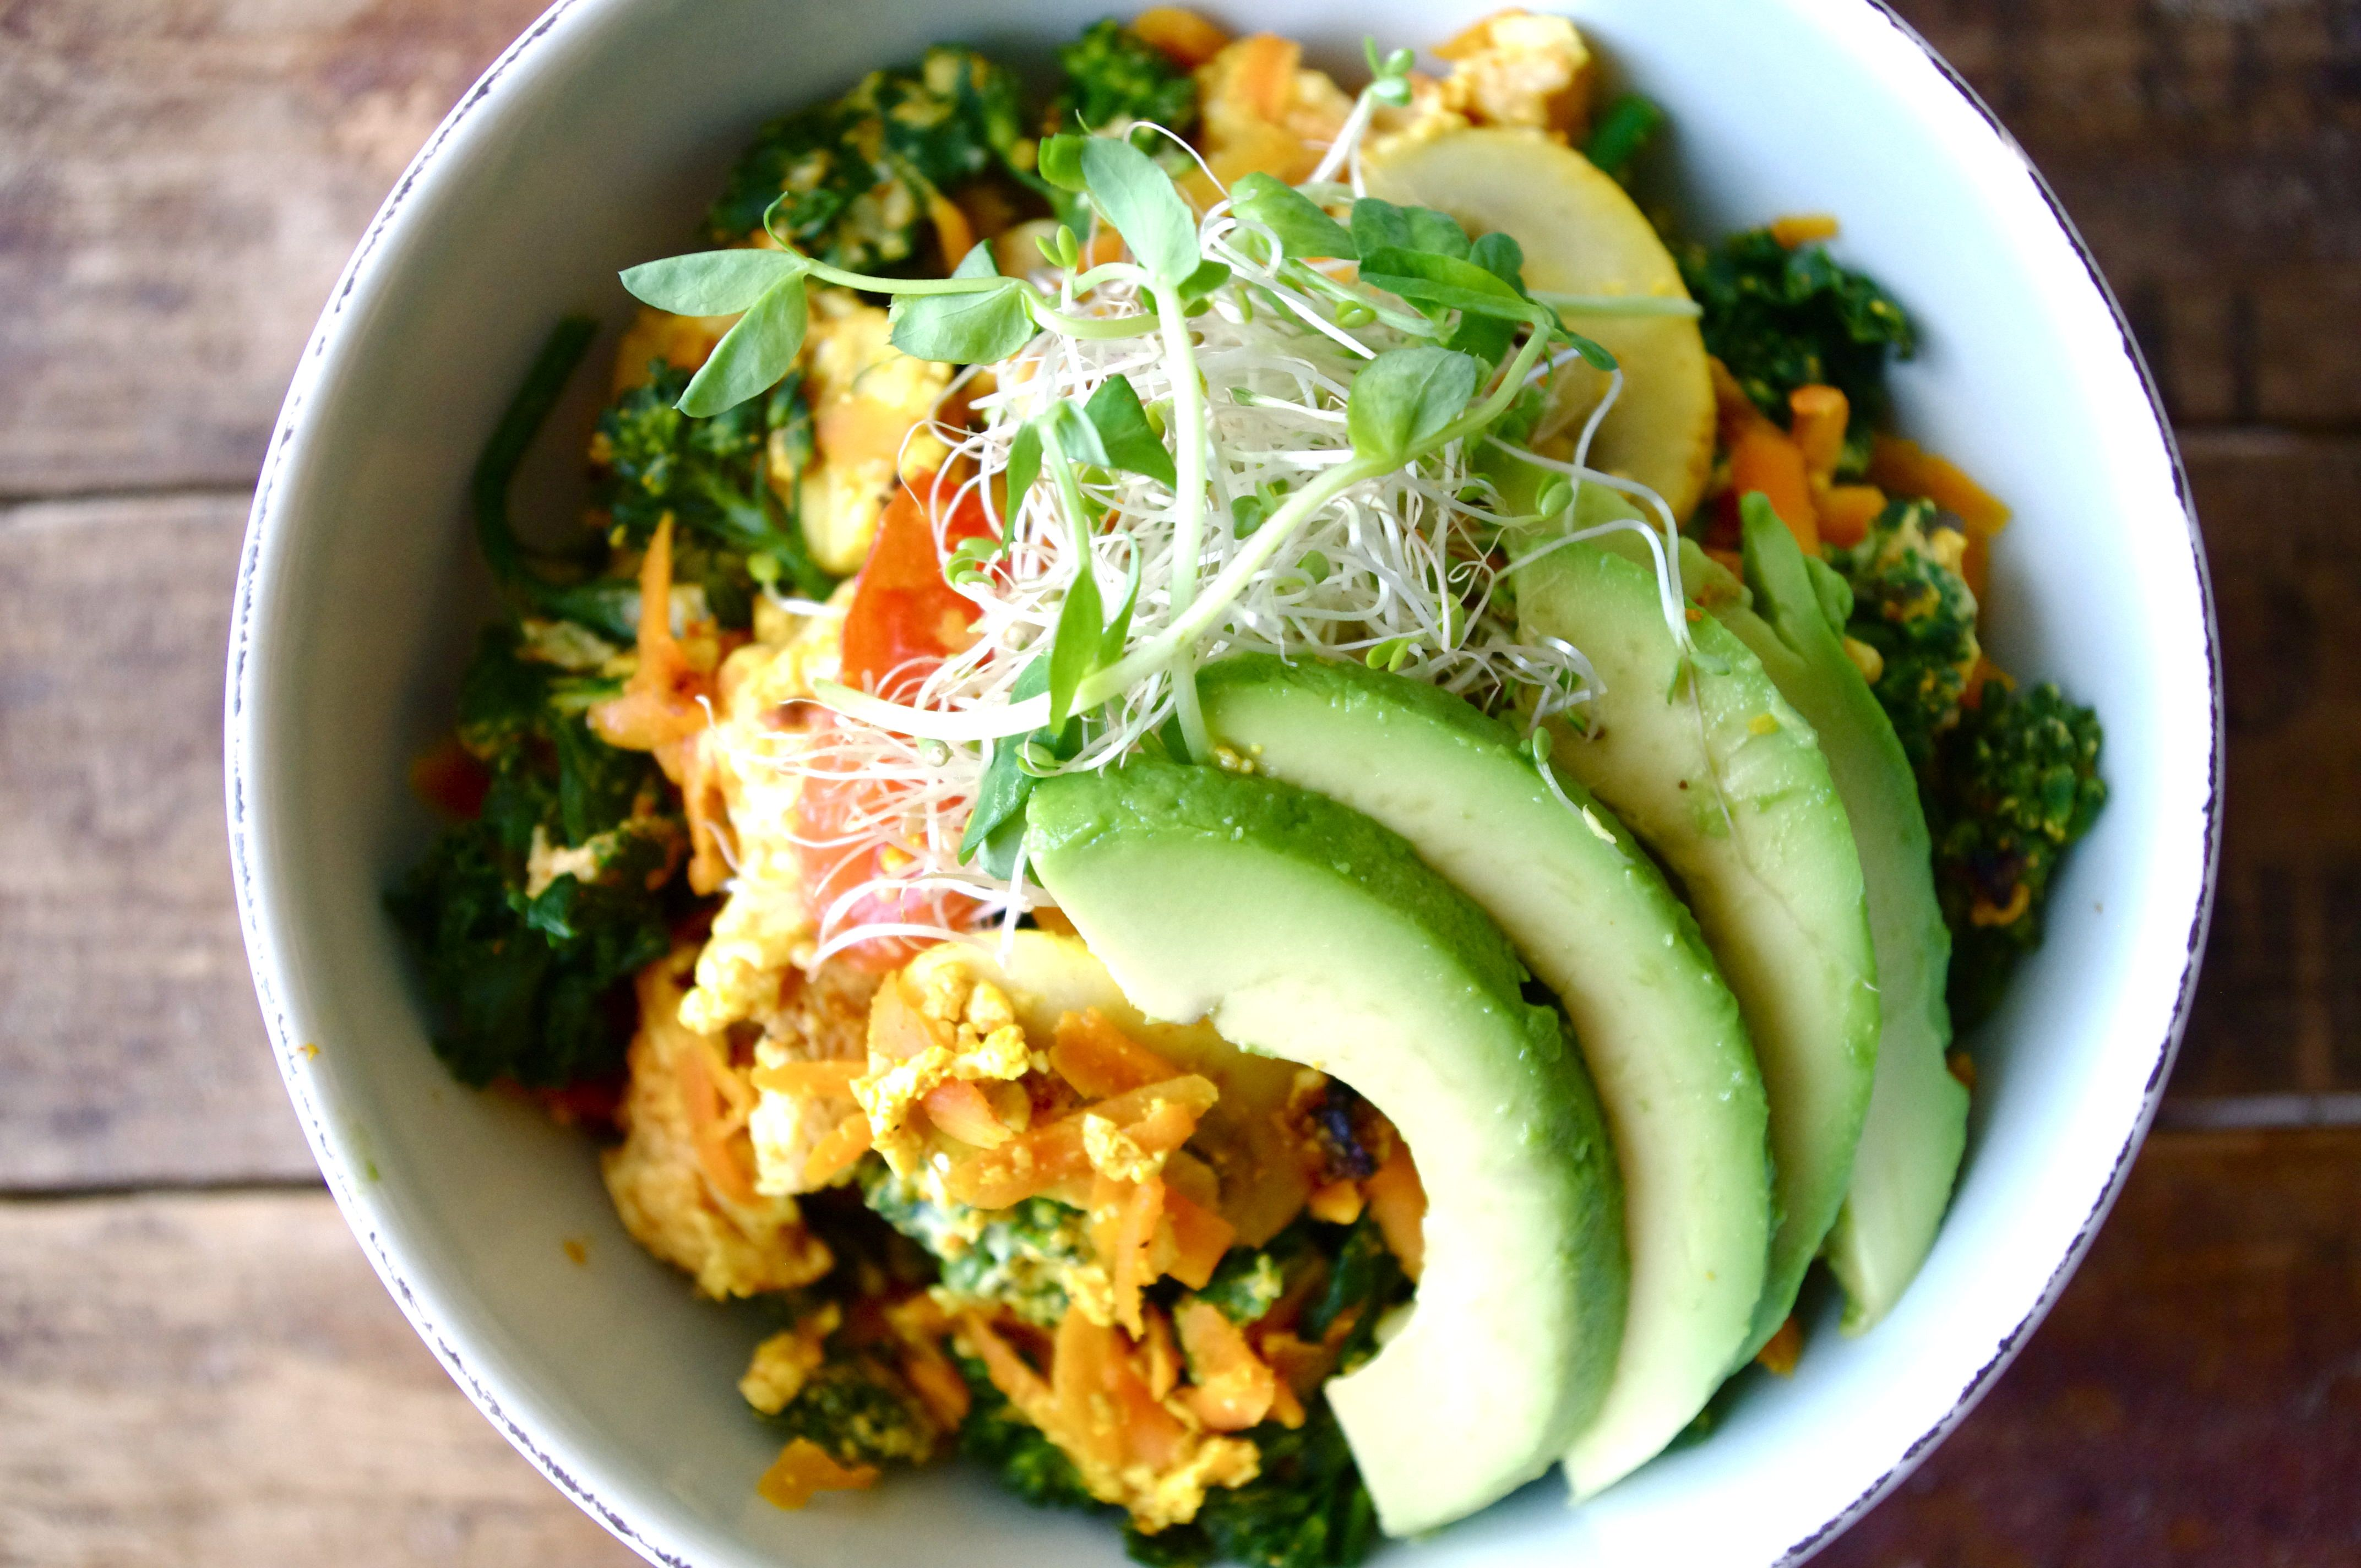 """The original """"Zen"""" dish was served on a plate with the egg scramble, a side of brown rice, and a side of black beans, topped with avocado and sprouts."""